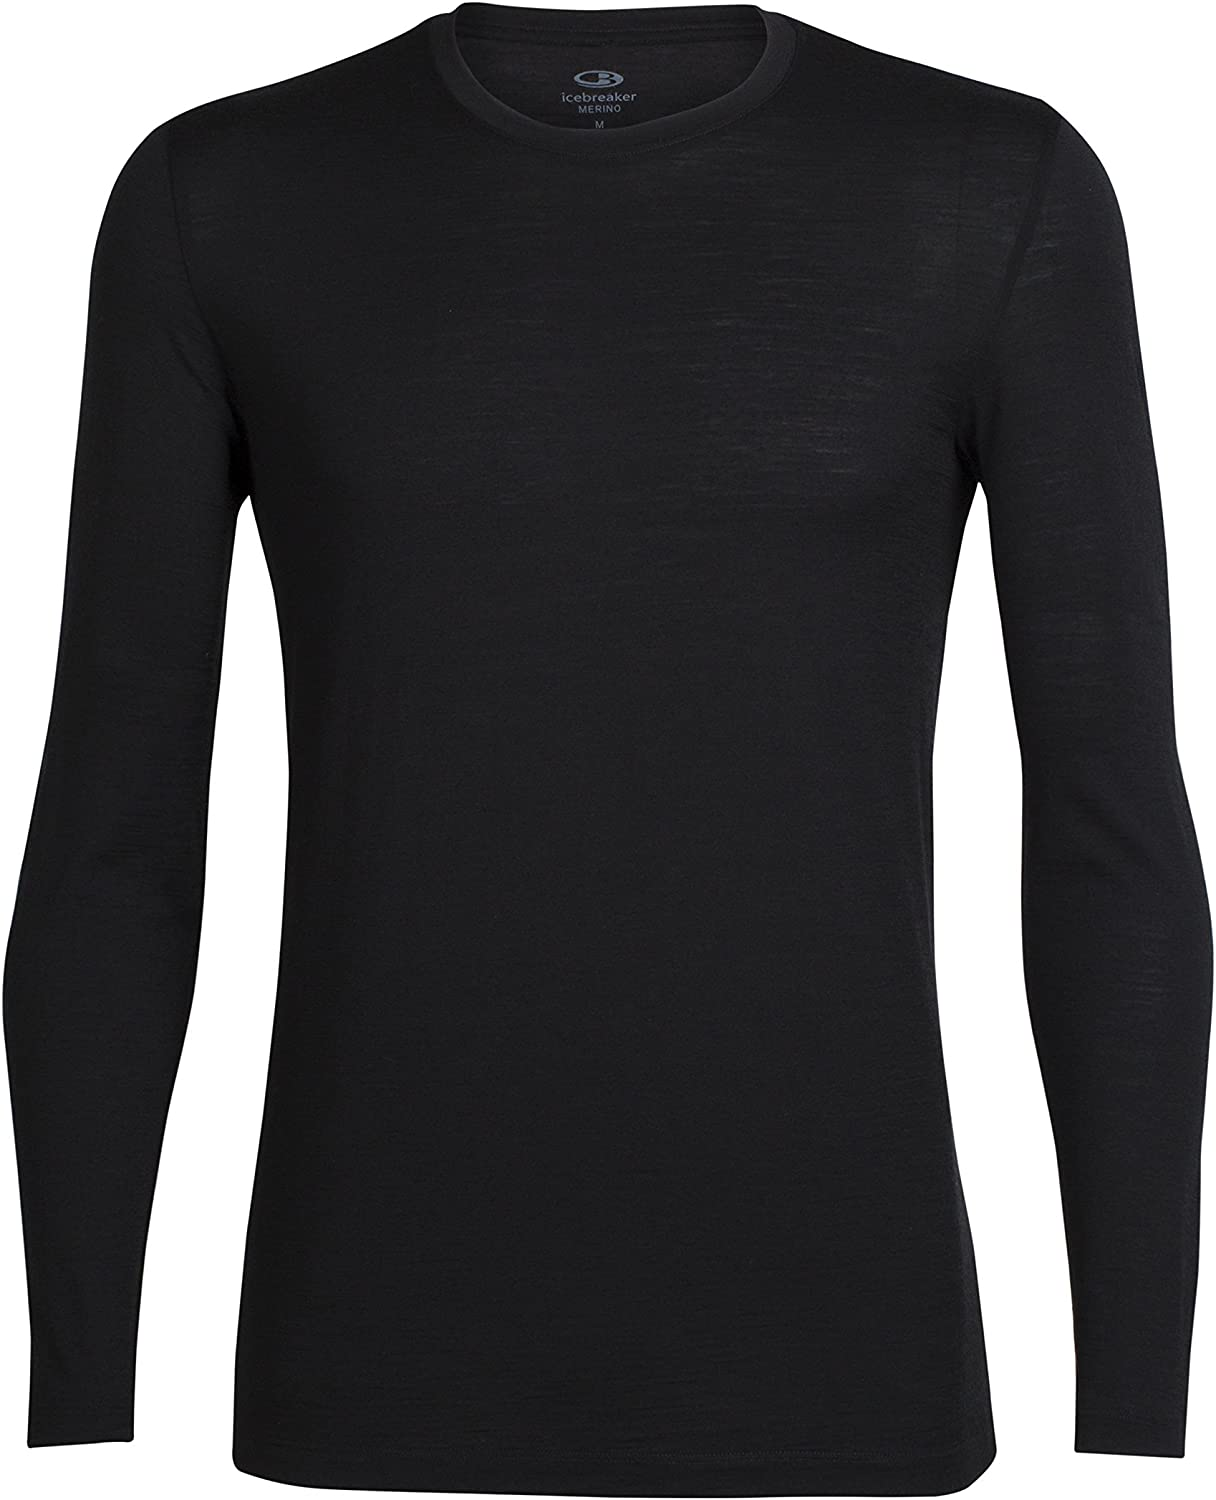 Merino Wool Icebreaker Merino Mens Tech Lite Long Sleeve T-Shirt